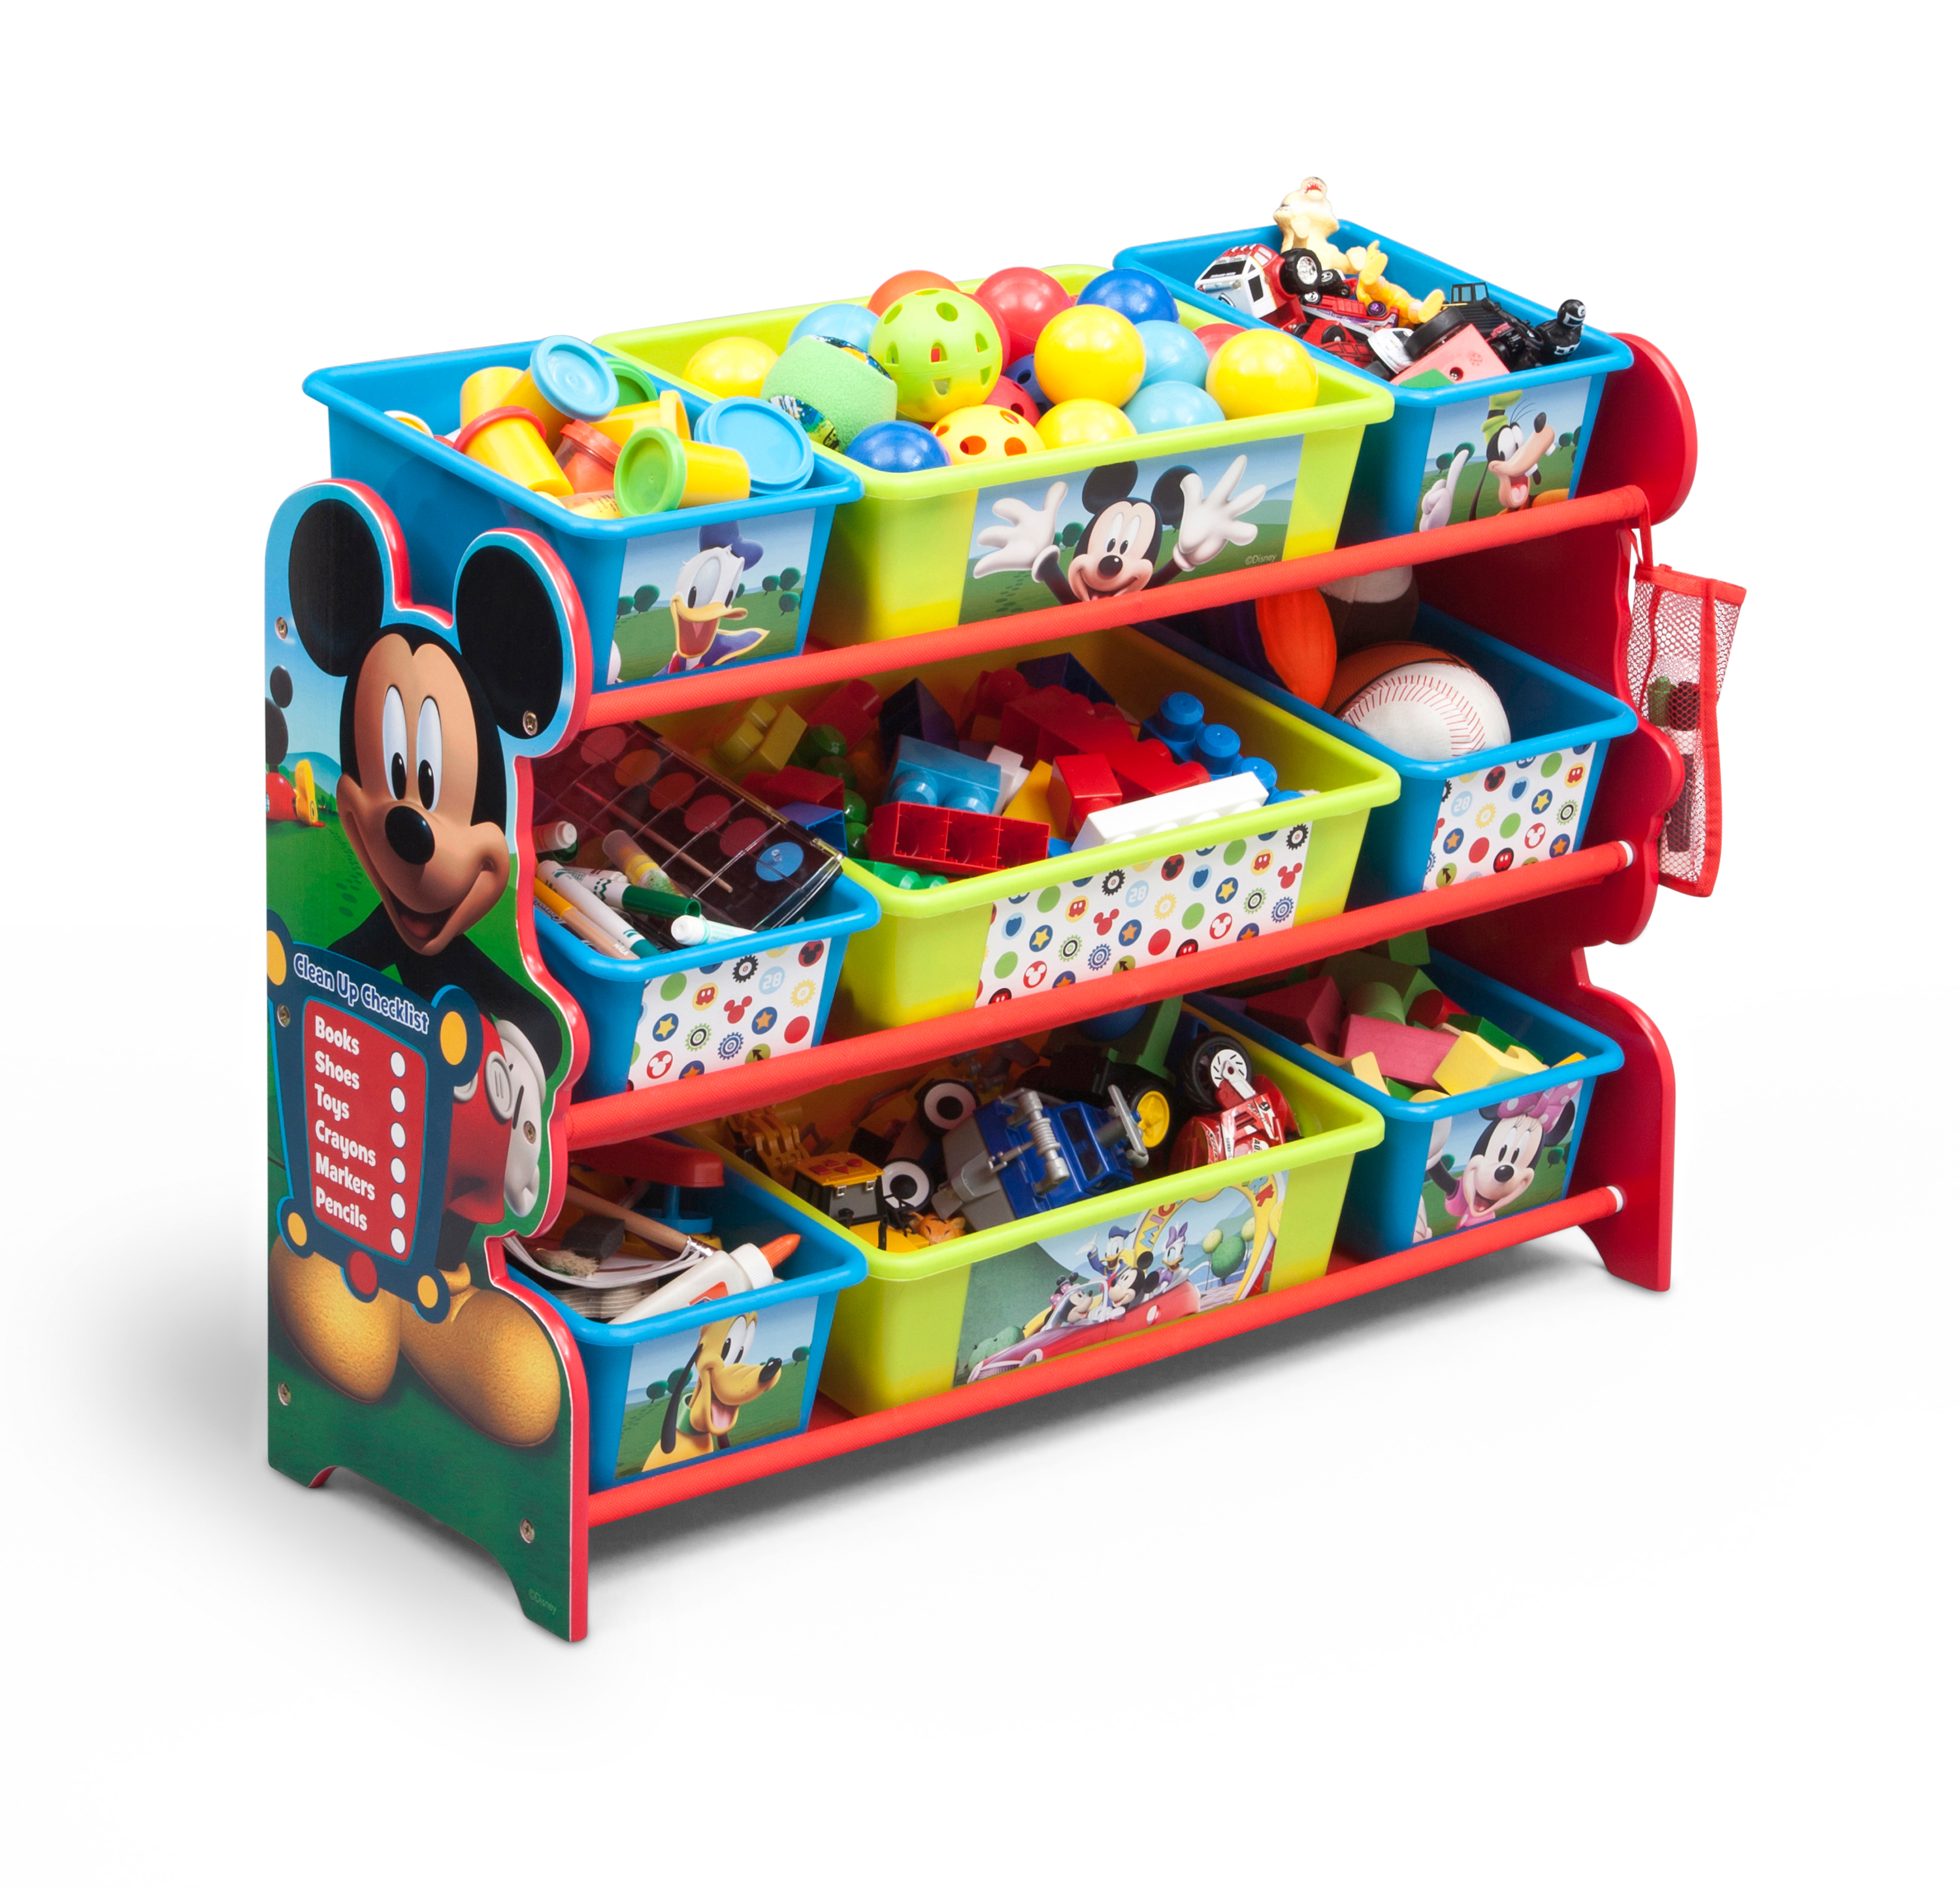 Disney Mickey Mouse Plastic 9 Bin Toy Organizer by Delta Children